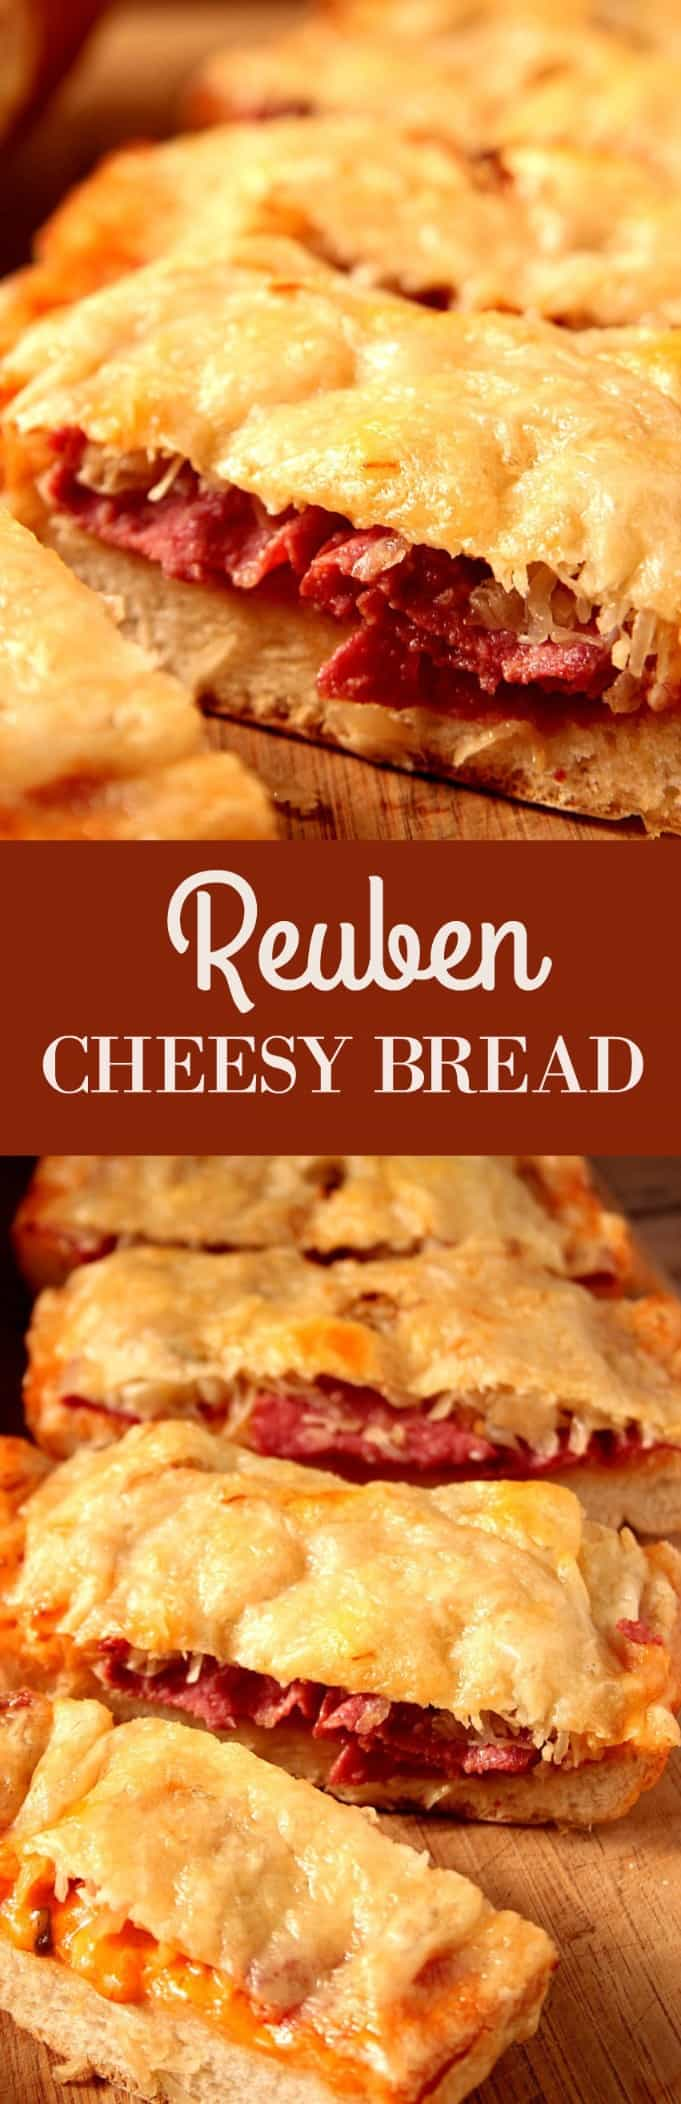 reuben cheesy bread long Easy Reuben Cheesy Bread